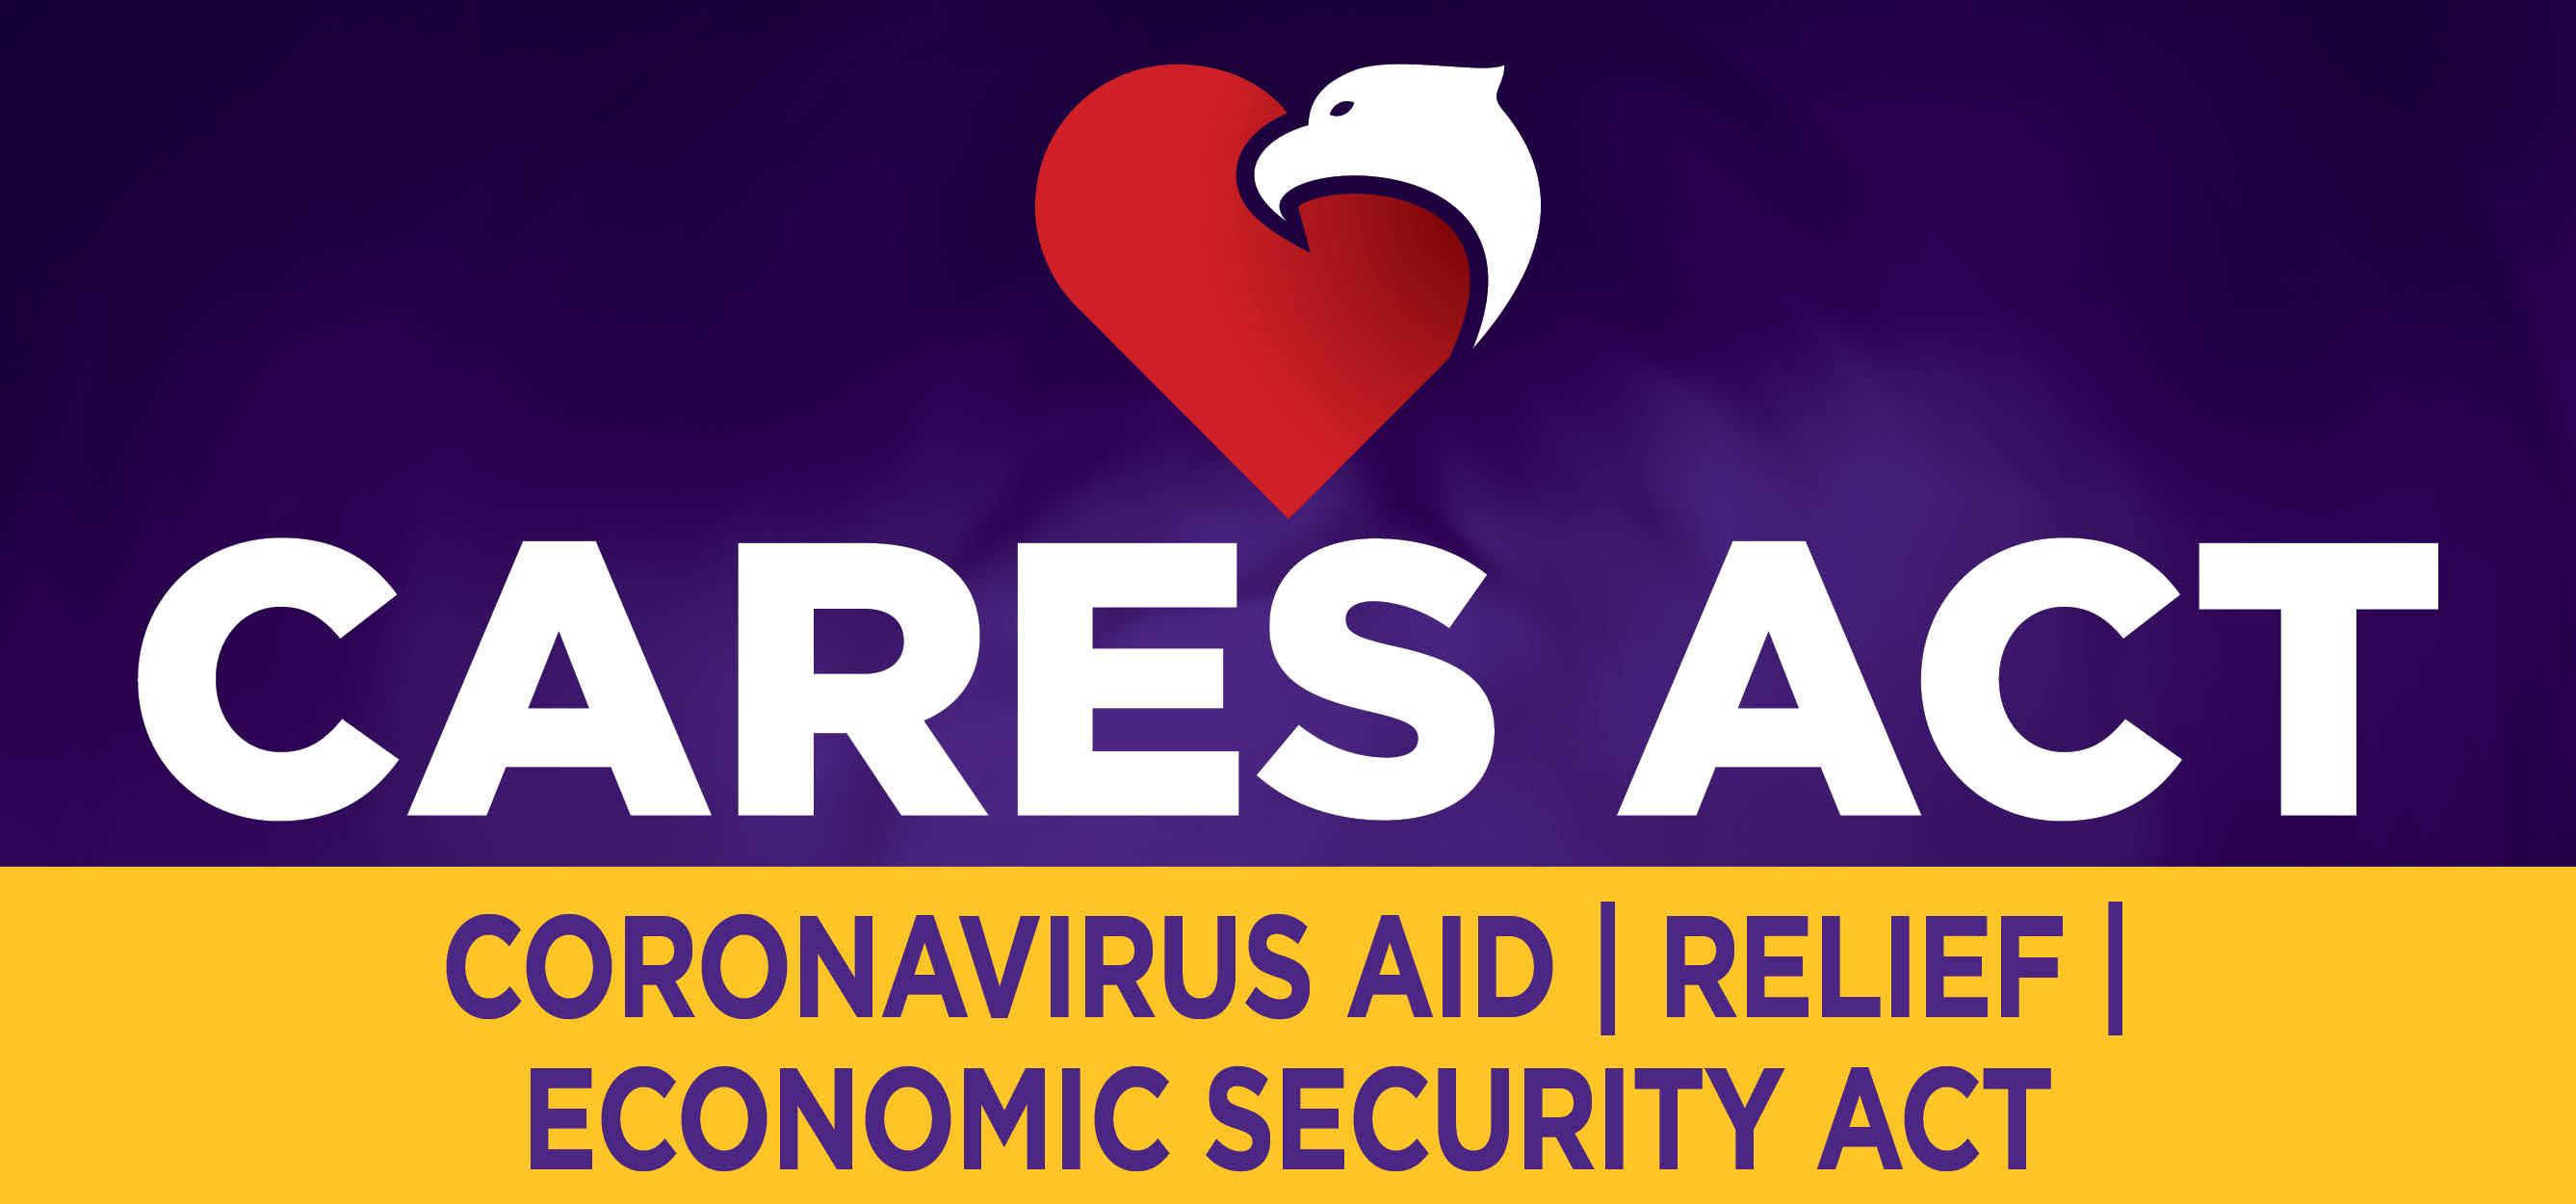 CARES Act heart with eagle logo